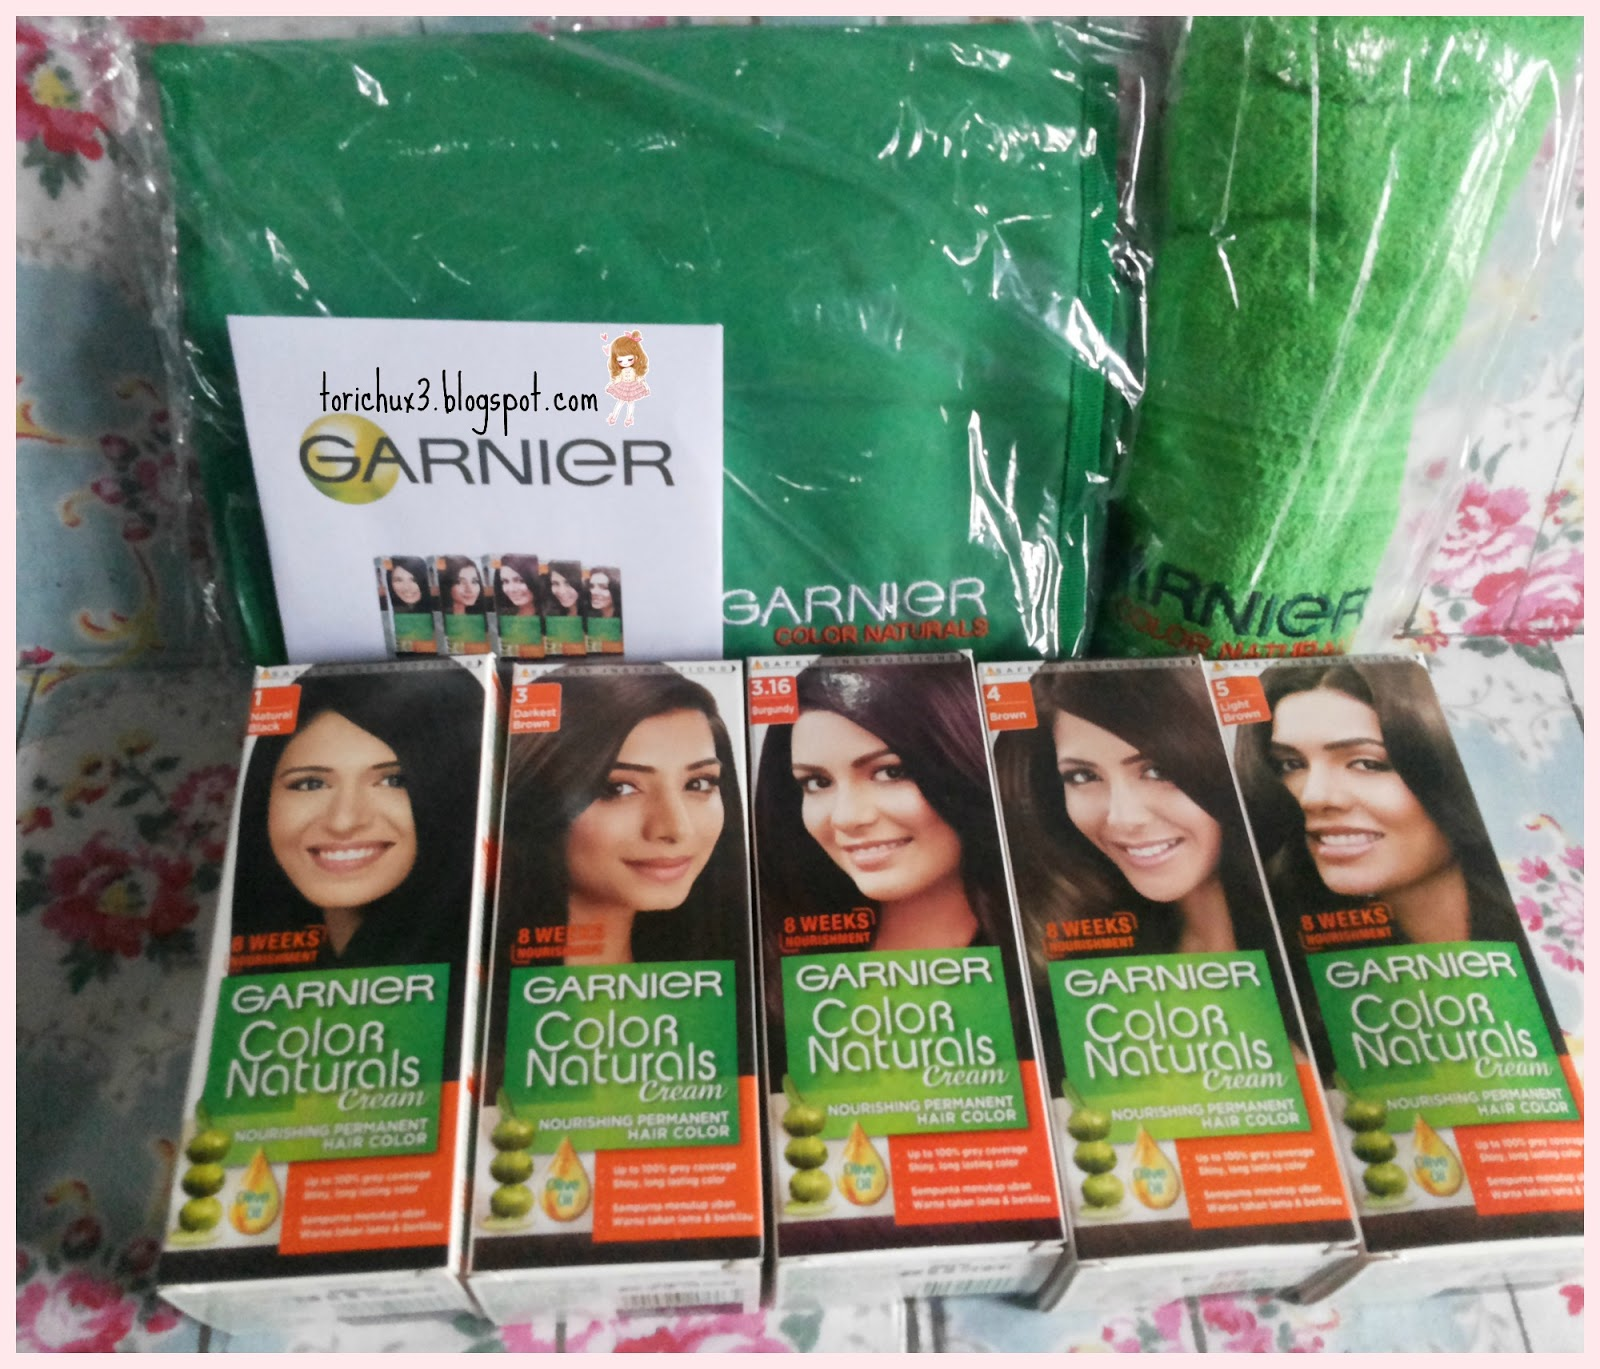 Tori Chu Review Garnier Color Naturals Cream 316 Burgundy Im So Curious To Open The Box Found 5 Boxes Of Natural 1 Black 3 Darkest Brown 4 And Light A Towel